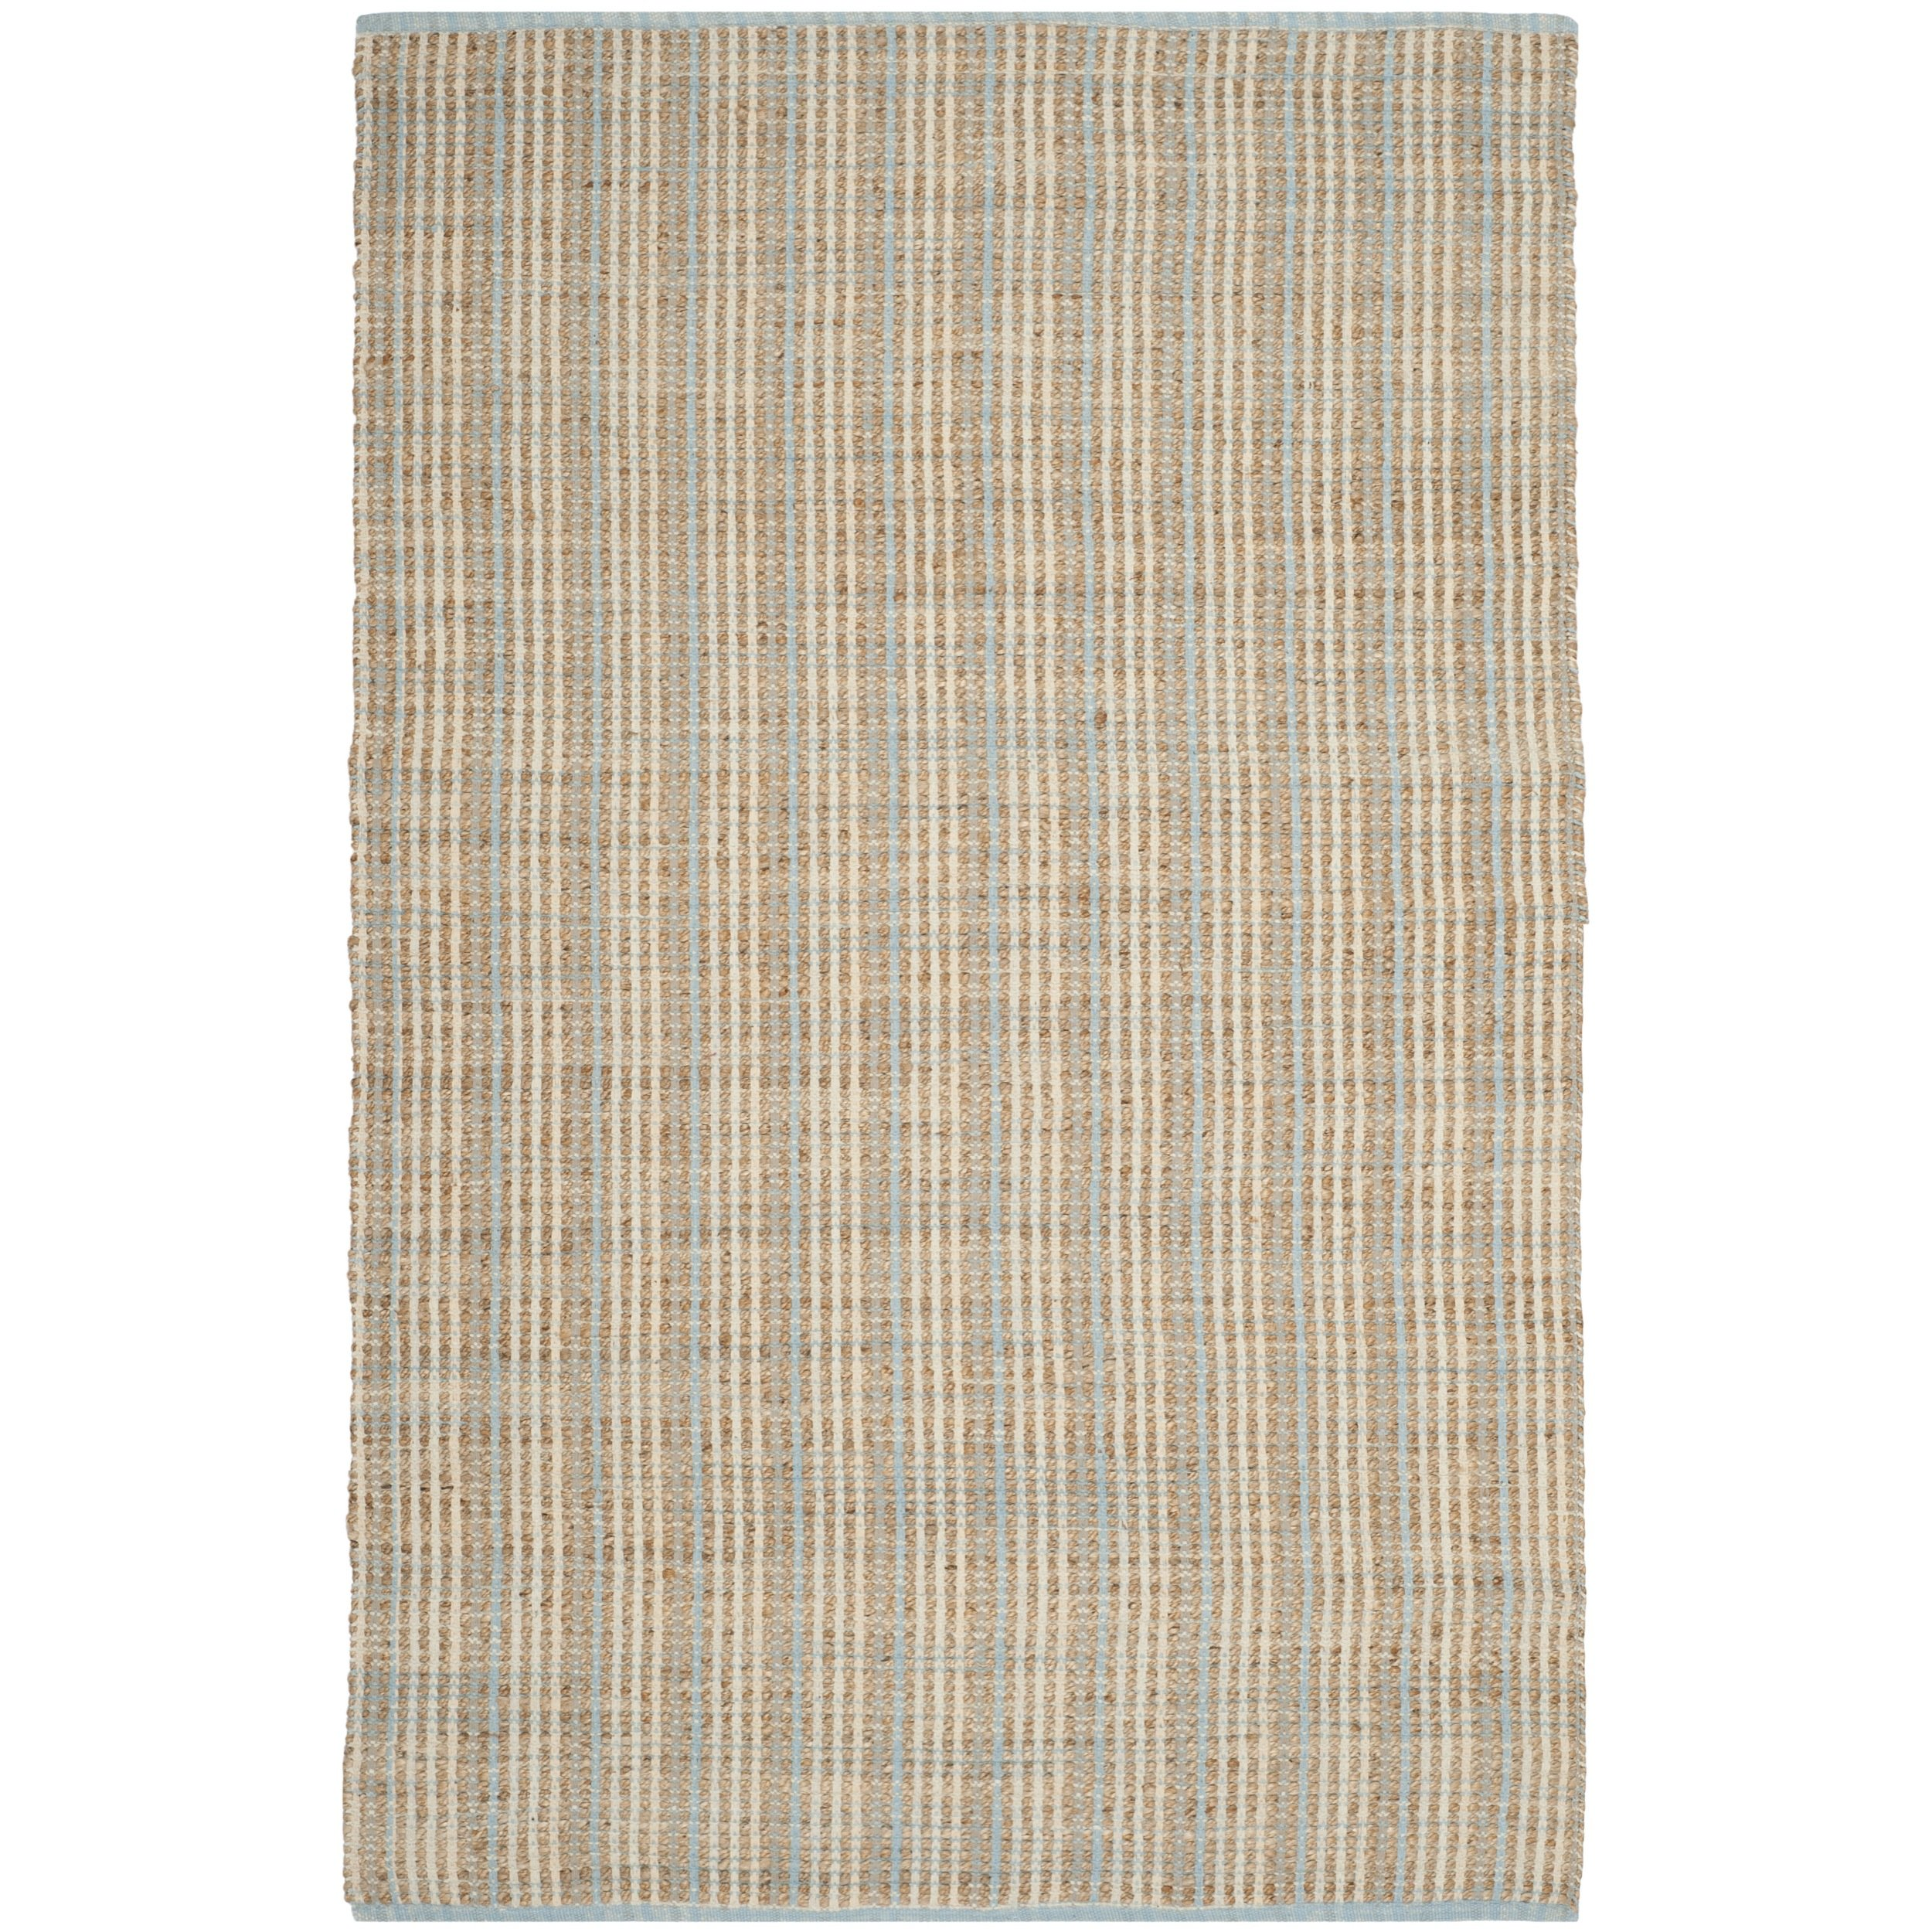 Safavieh Cape Cod Collection CAP831A Hand Woven Natural Jute and Cotton Striped Area Rug (6' x 9') by Safavieh